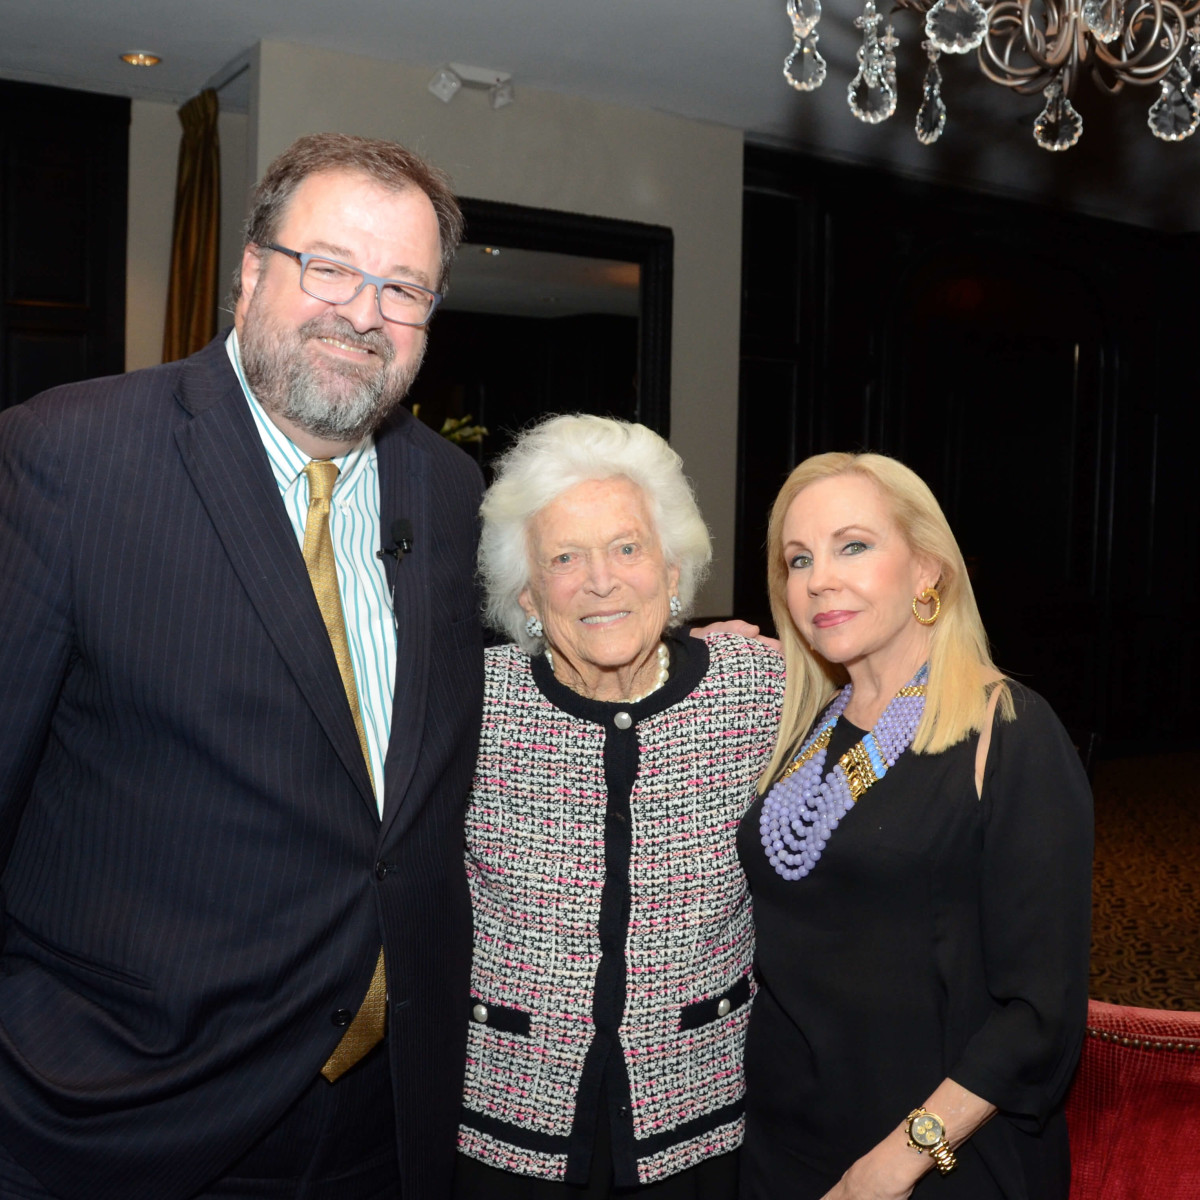 Houston, Children at Risk Accolades luncheon, Nov. 2016, Dr. Bob Sanborn, Barbara Bush, Carolyn Farb